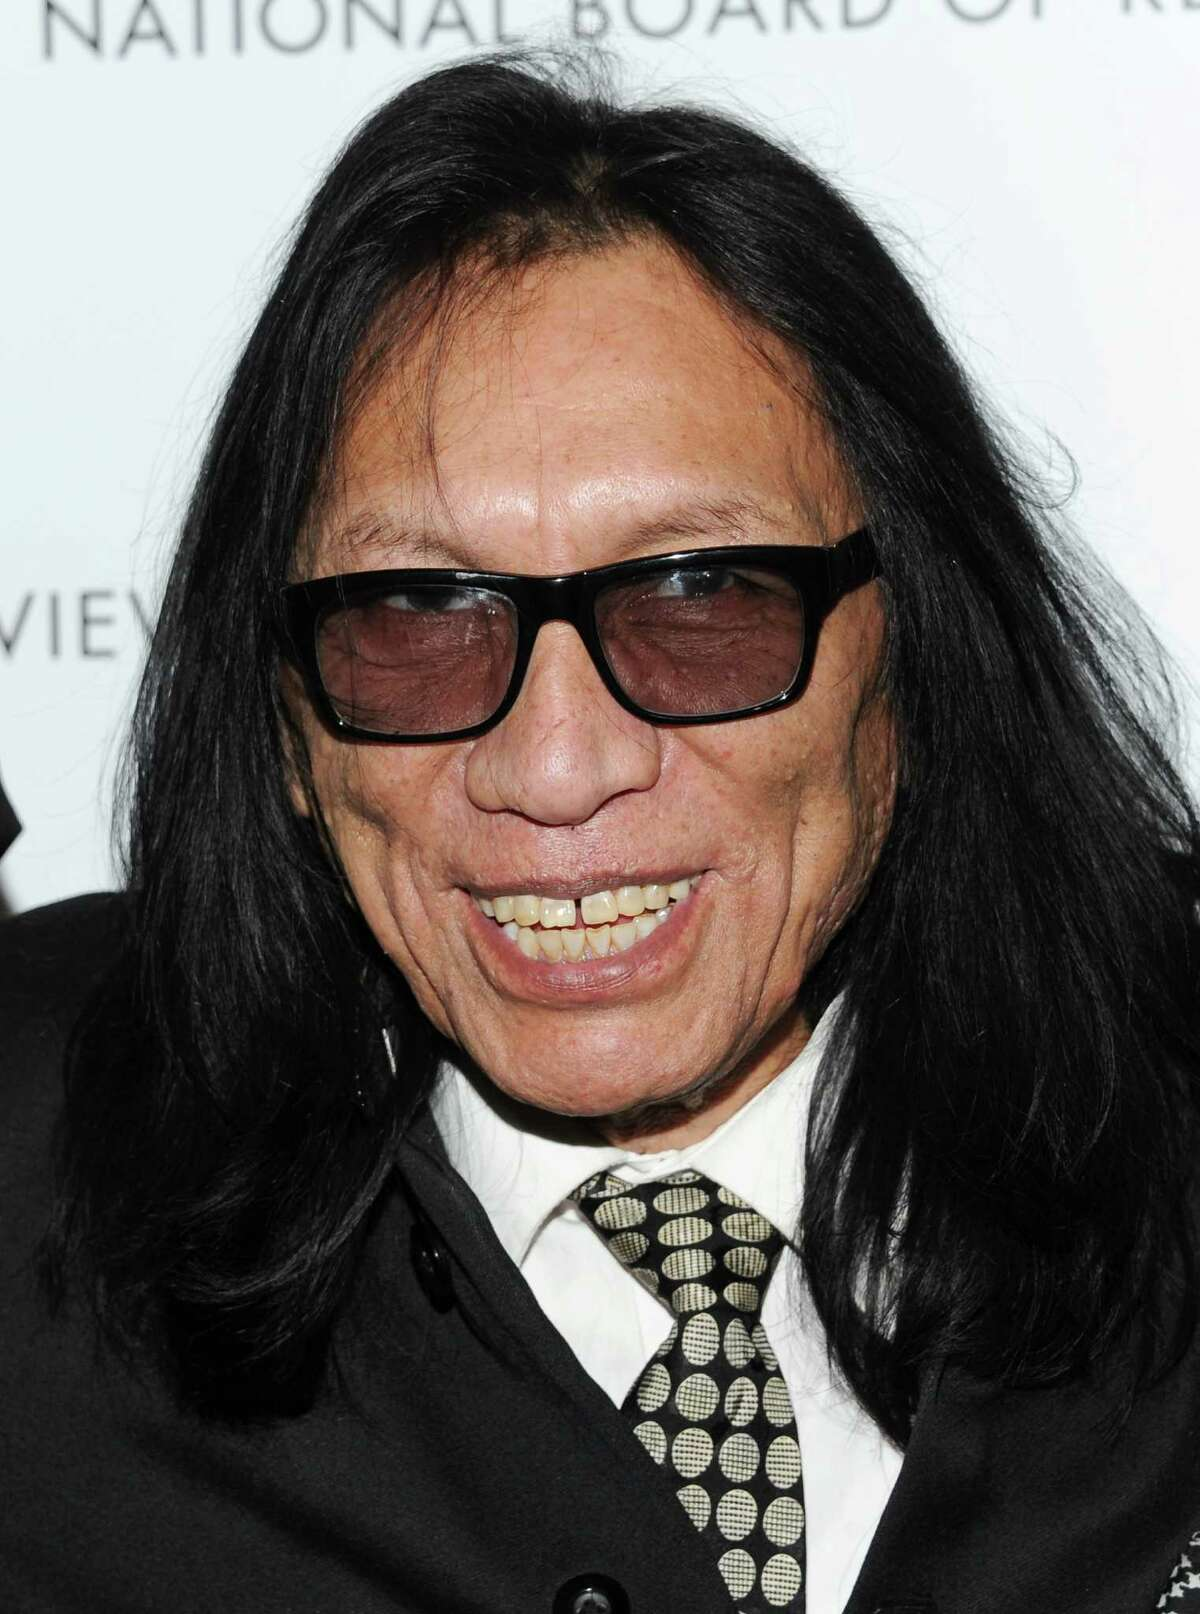 Musician Sixto Rodriguez attends the National Board of Review Awards gala at Cipriani 42nd St. on Tuesday Jan. 8, 2013 in New York.